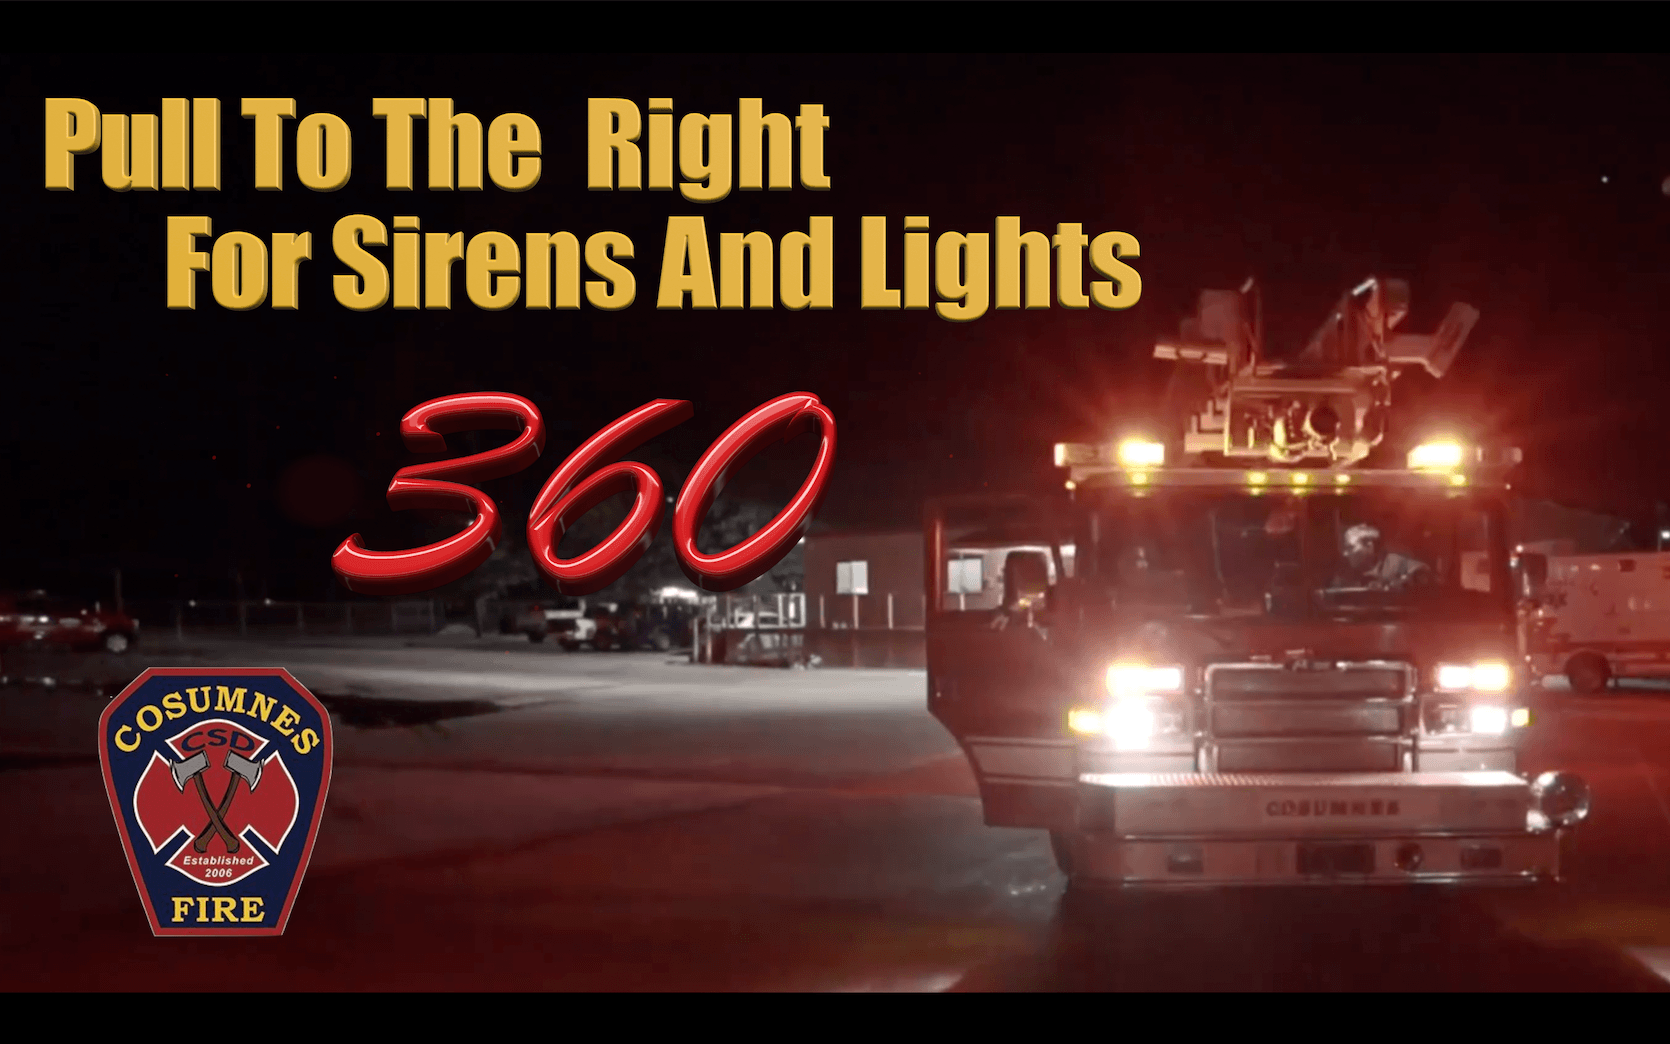 Pull To The Right For Sirens And Lights